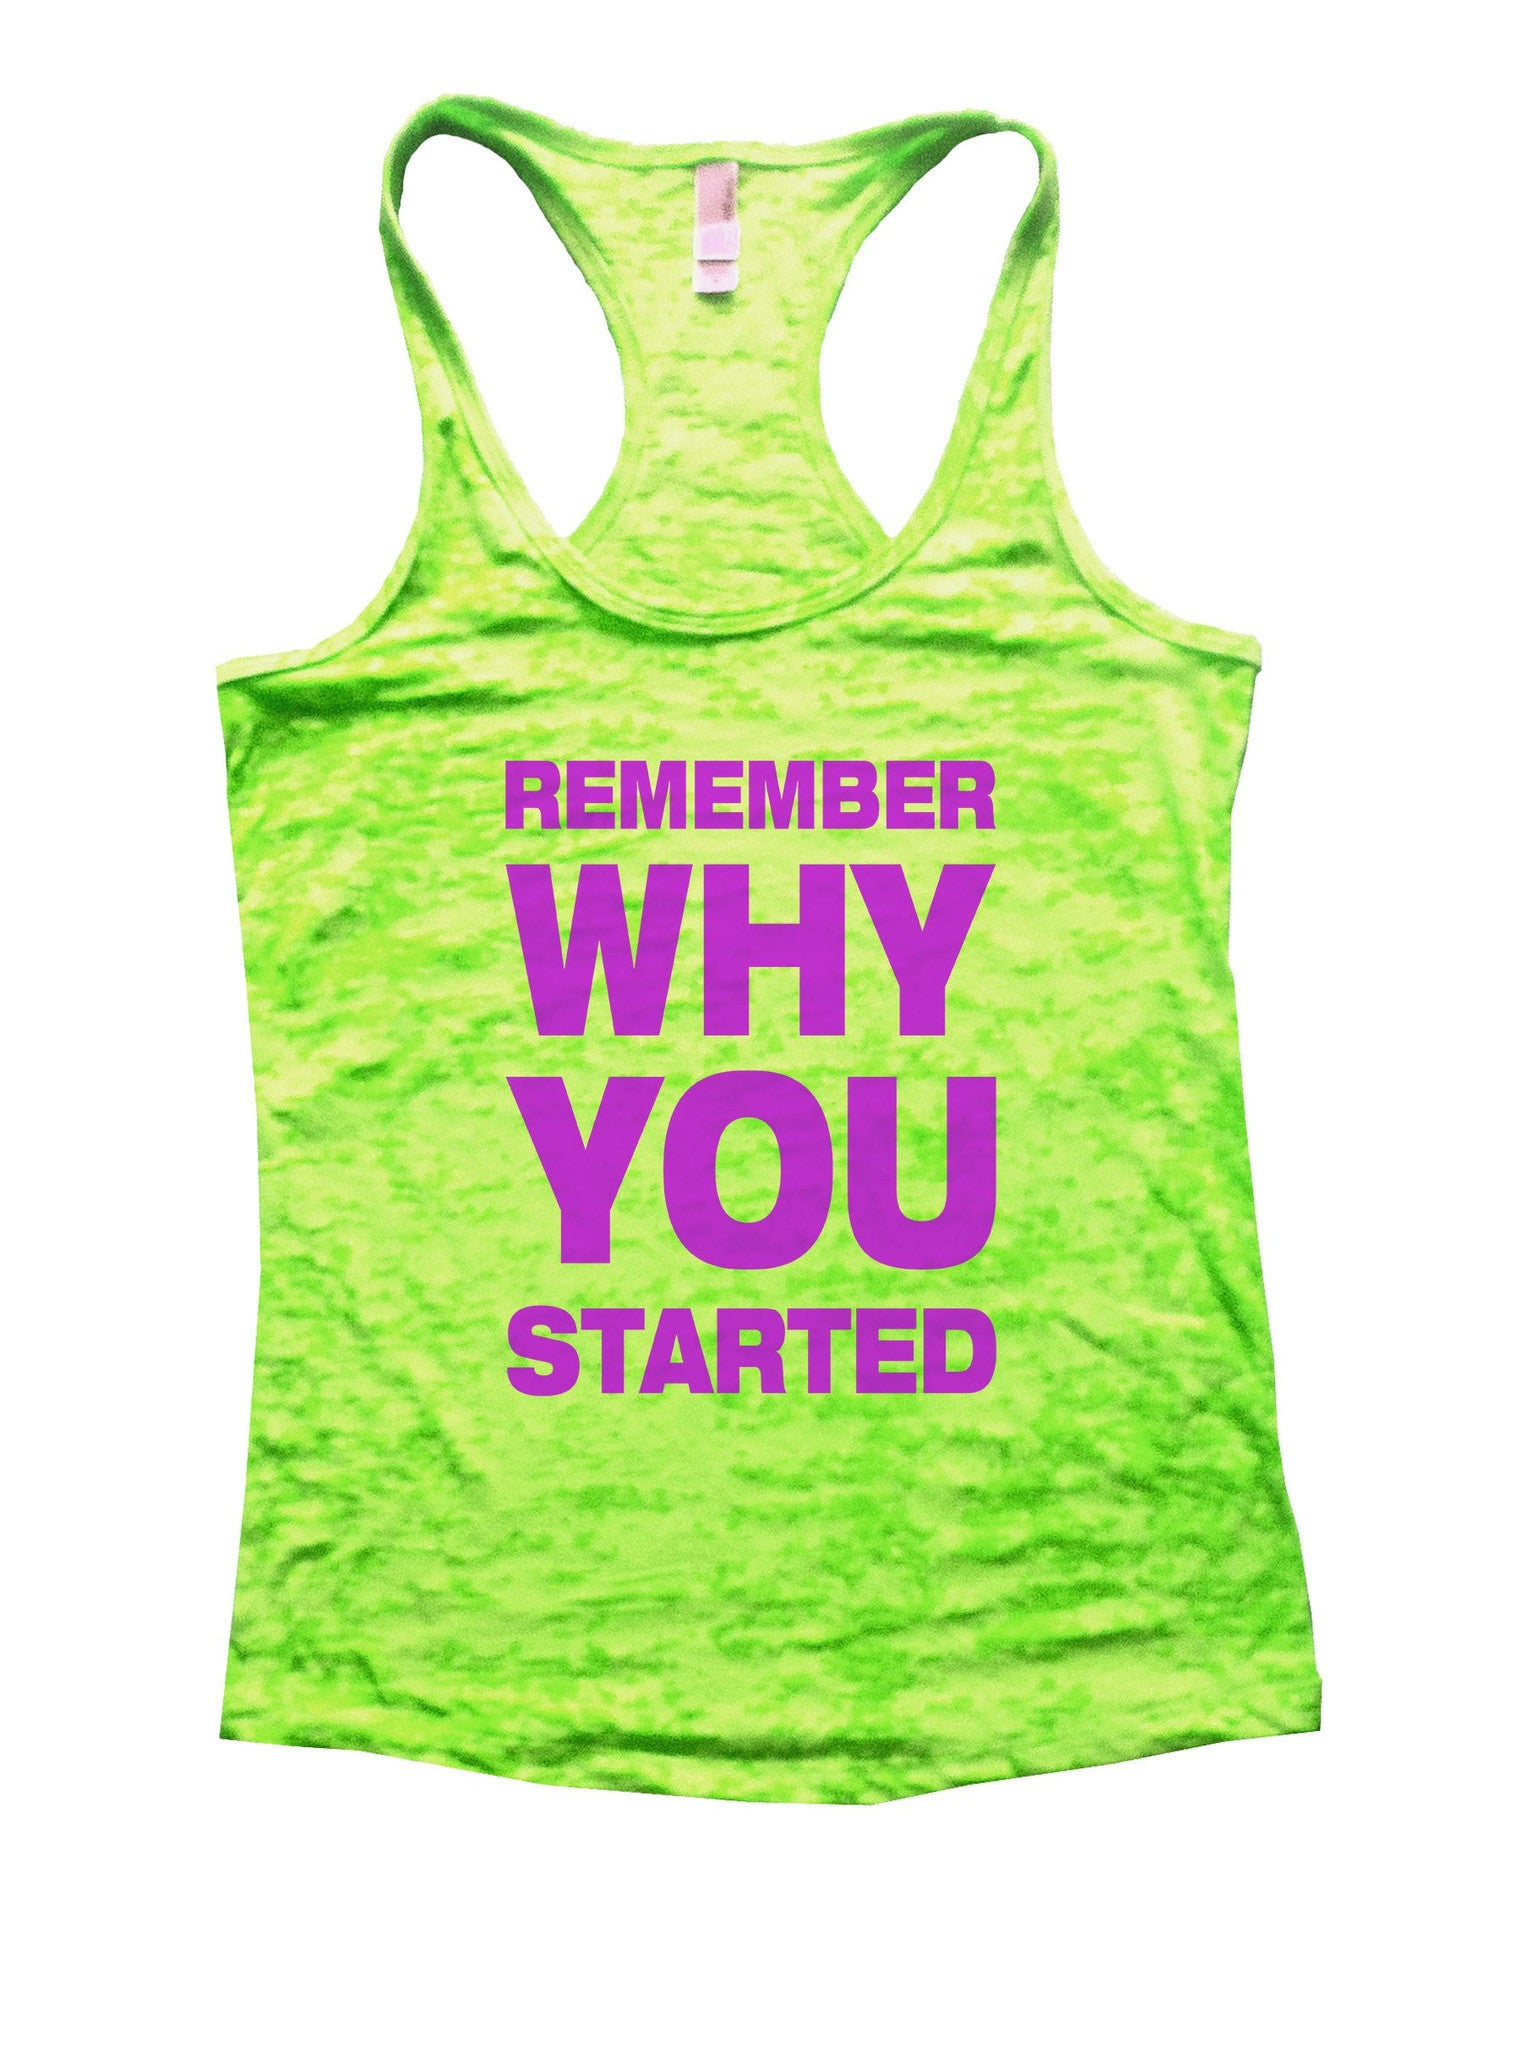 Remember Why You Started Burnout Tank Top By BurnoutTankTops.com - 852 - Funny Shirts Tank Tops Burnouts and Triblends  - 2